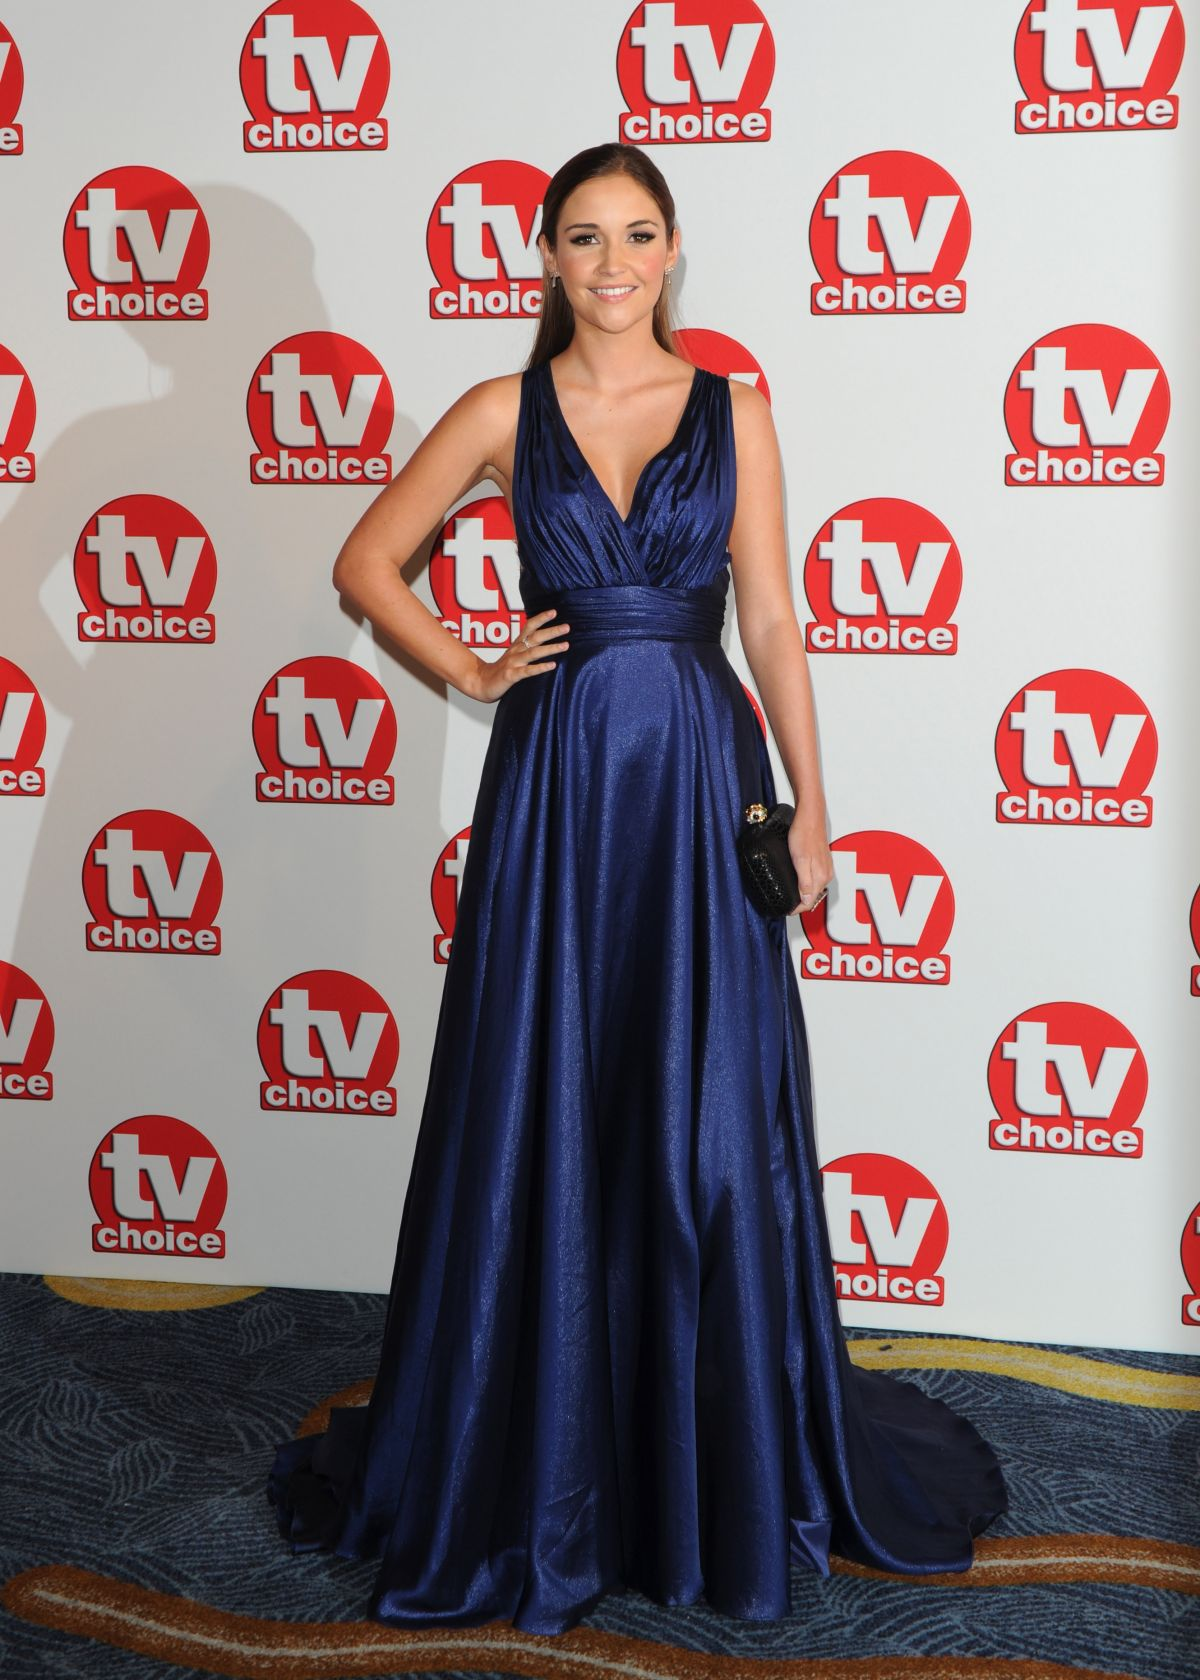 JACQUELINE JOSSA at TV Choice Awards 2014 in London